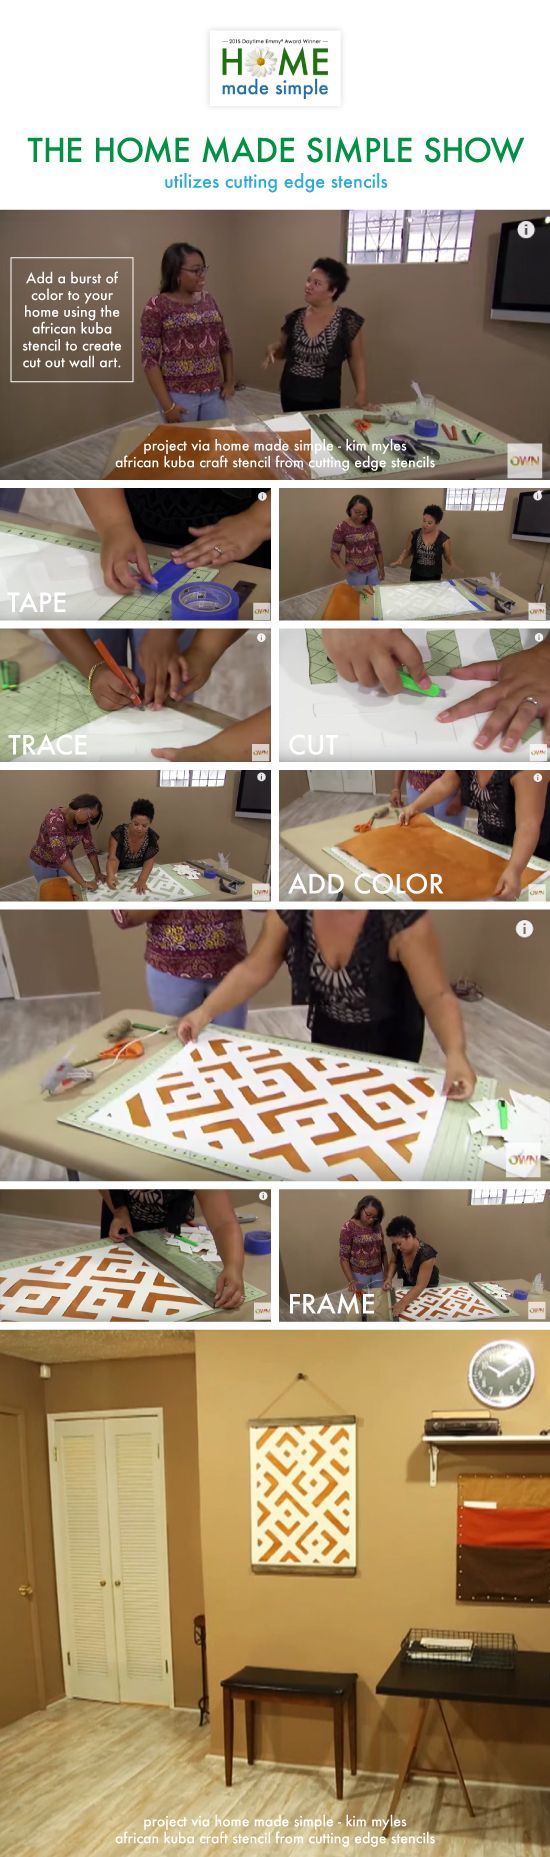 The Oprah Network's Home Made Simple Show features Kim Myles using the African Kuba Craft Stencil to create DIY wall art. http://www.cuttingedgestencils.com/kuba-stencil-pattern-stencils.html